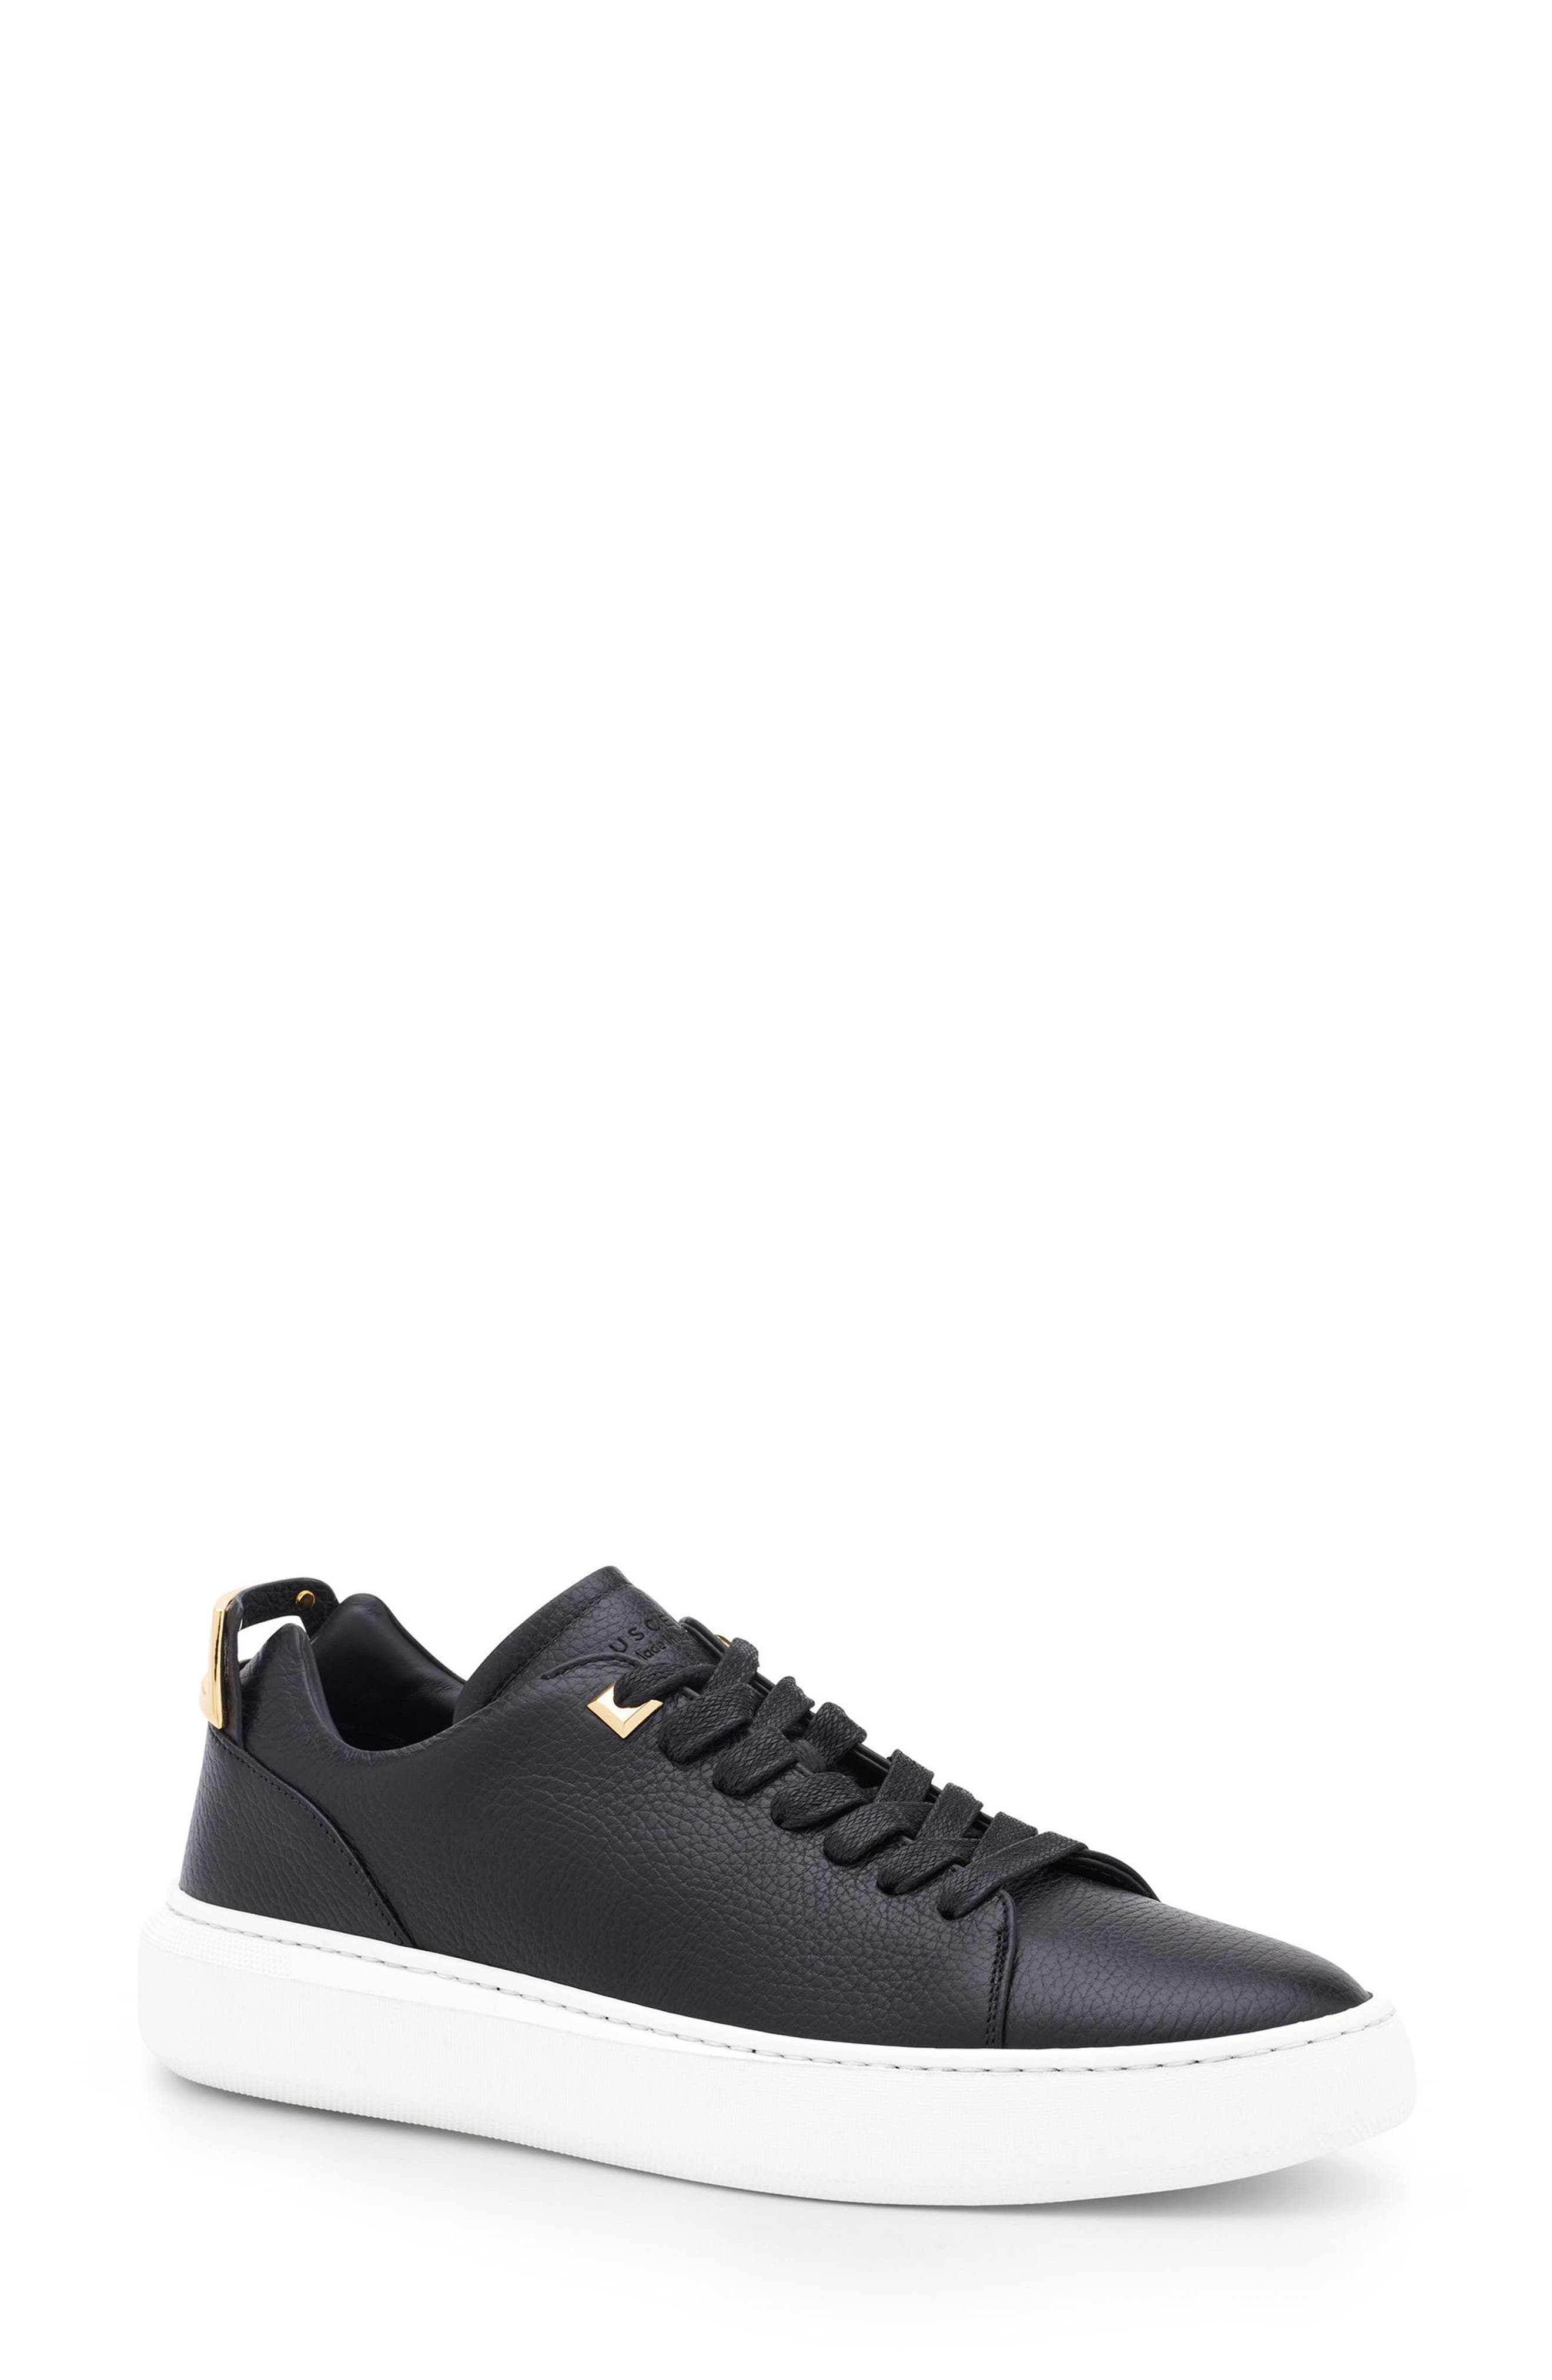 Uno Low Top Sneaker,                             Main thumbnail 1, color,                             001